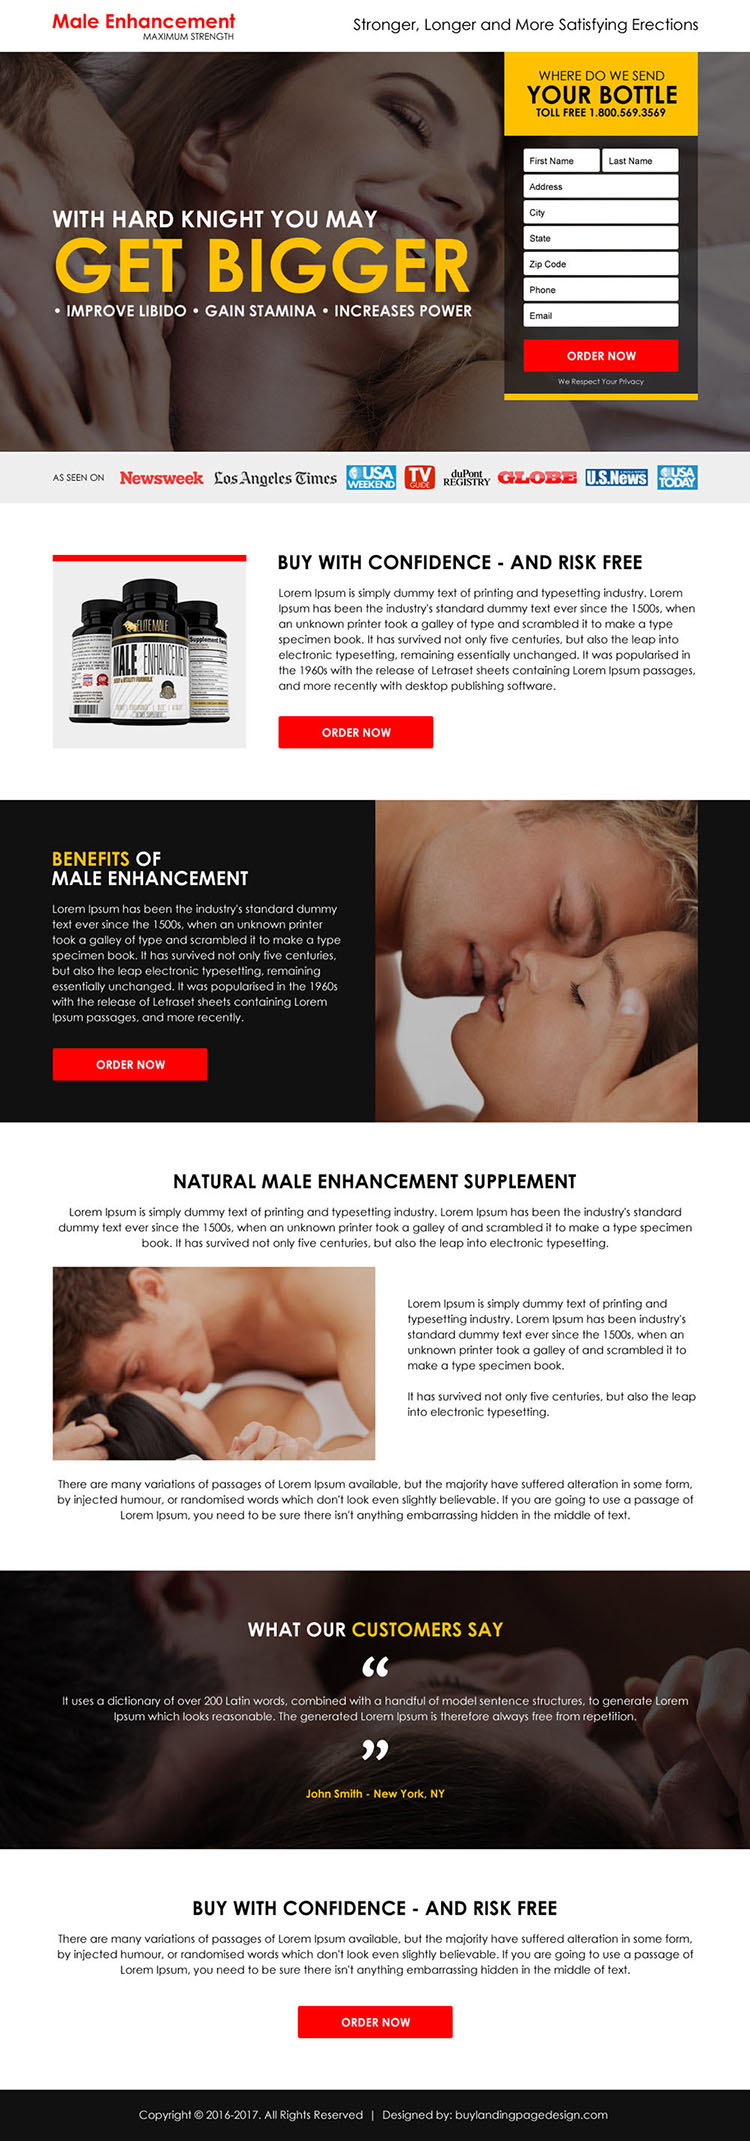 male enhancement product selling responsive landing page